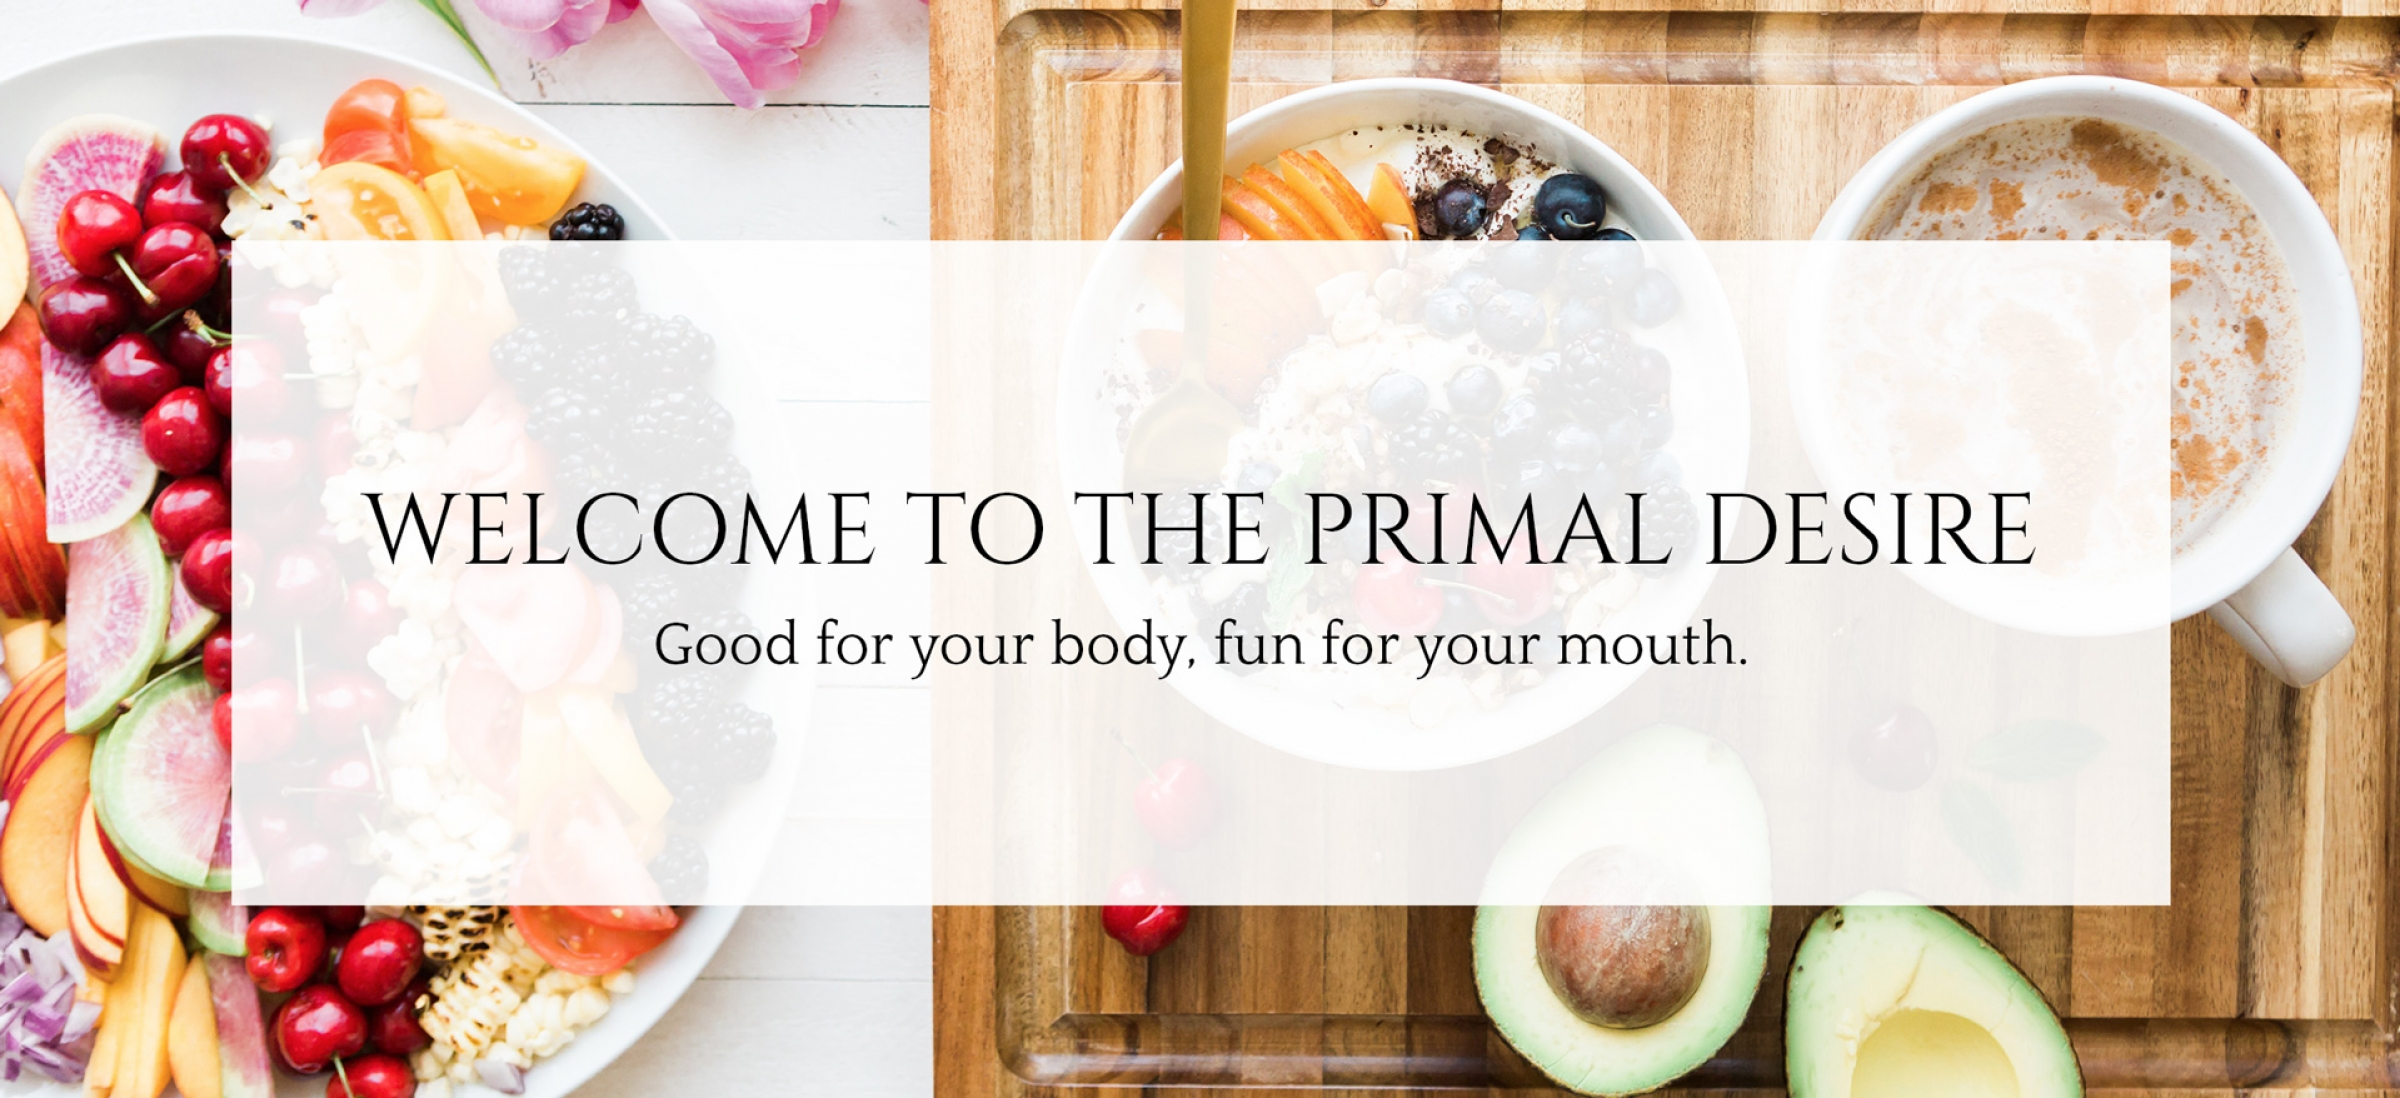 The Primal Desire; Good for your body, fun for your mouth